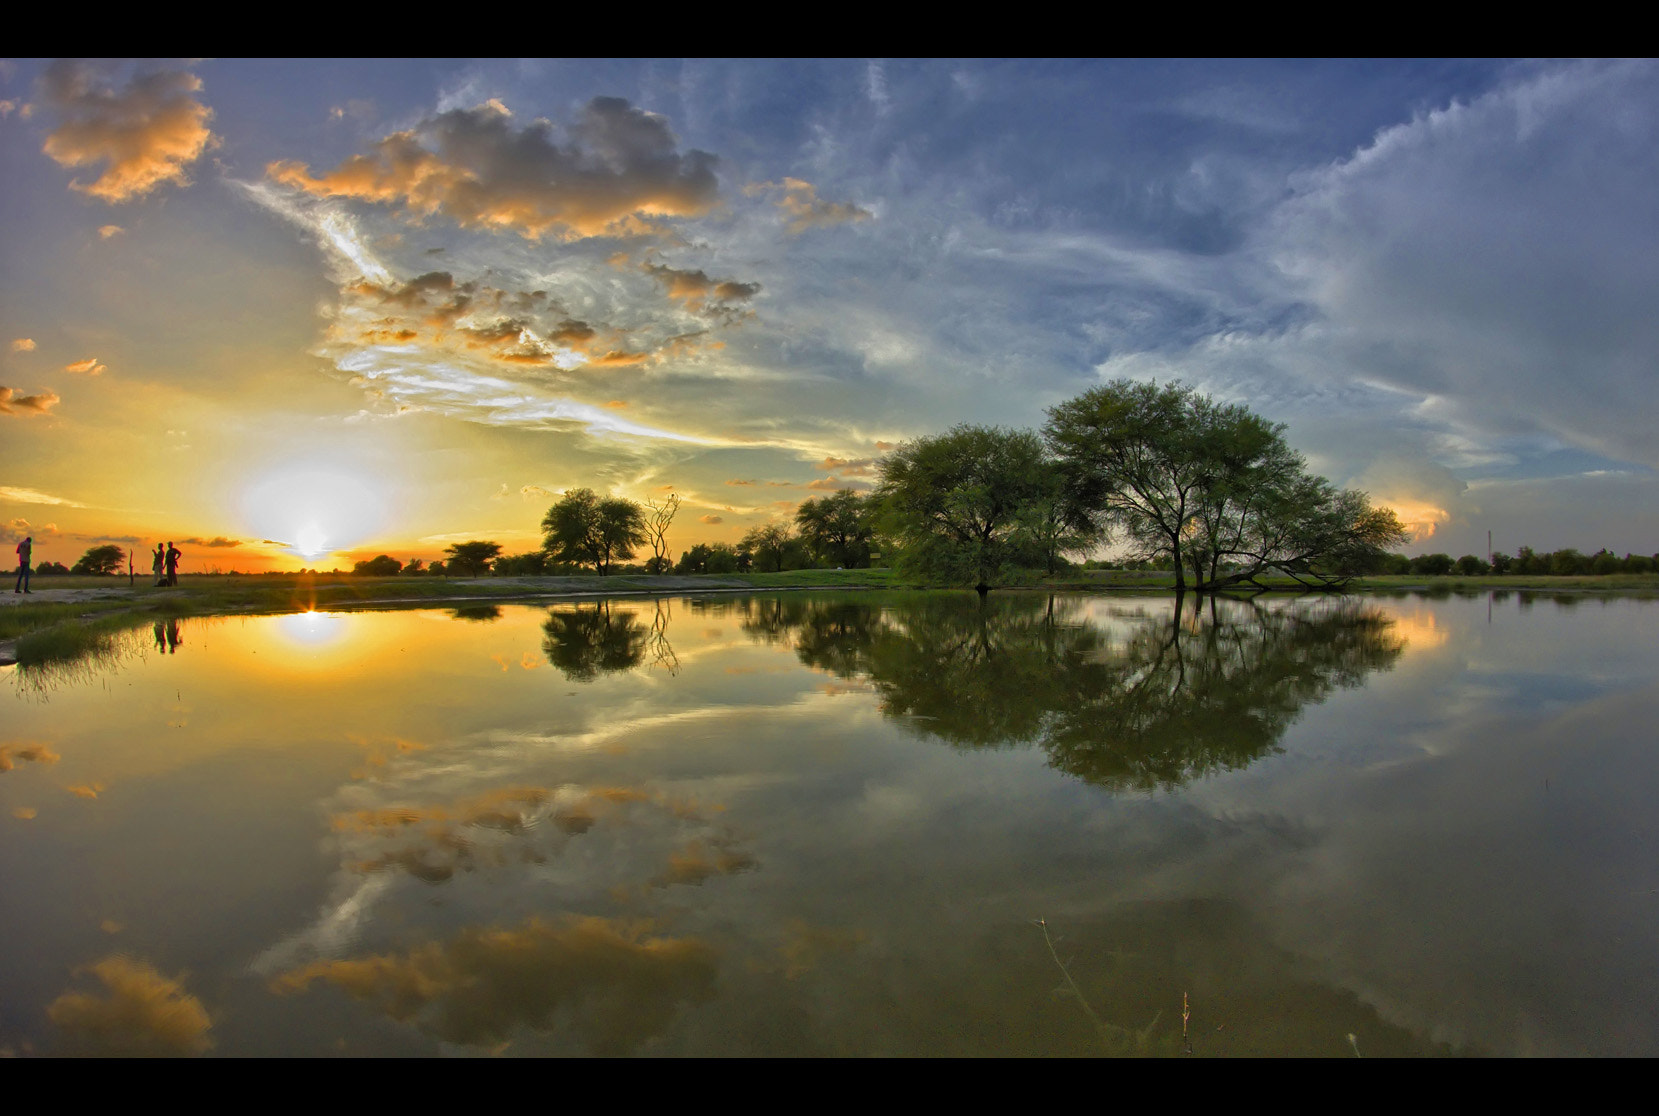 Photograph reflection  by Hemant Kumar on 500px